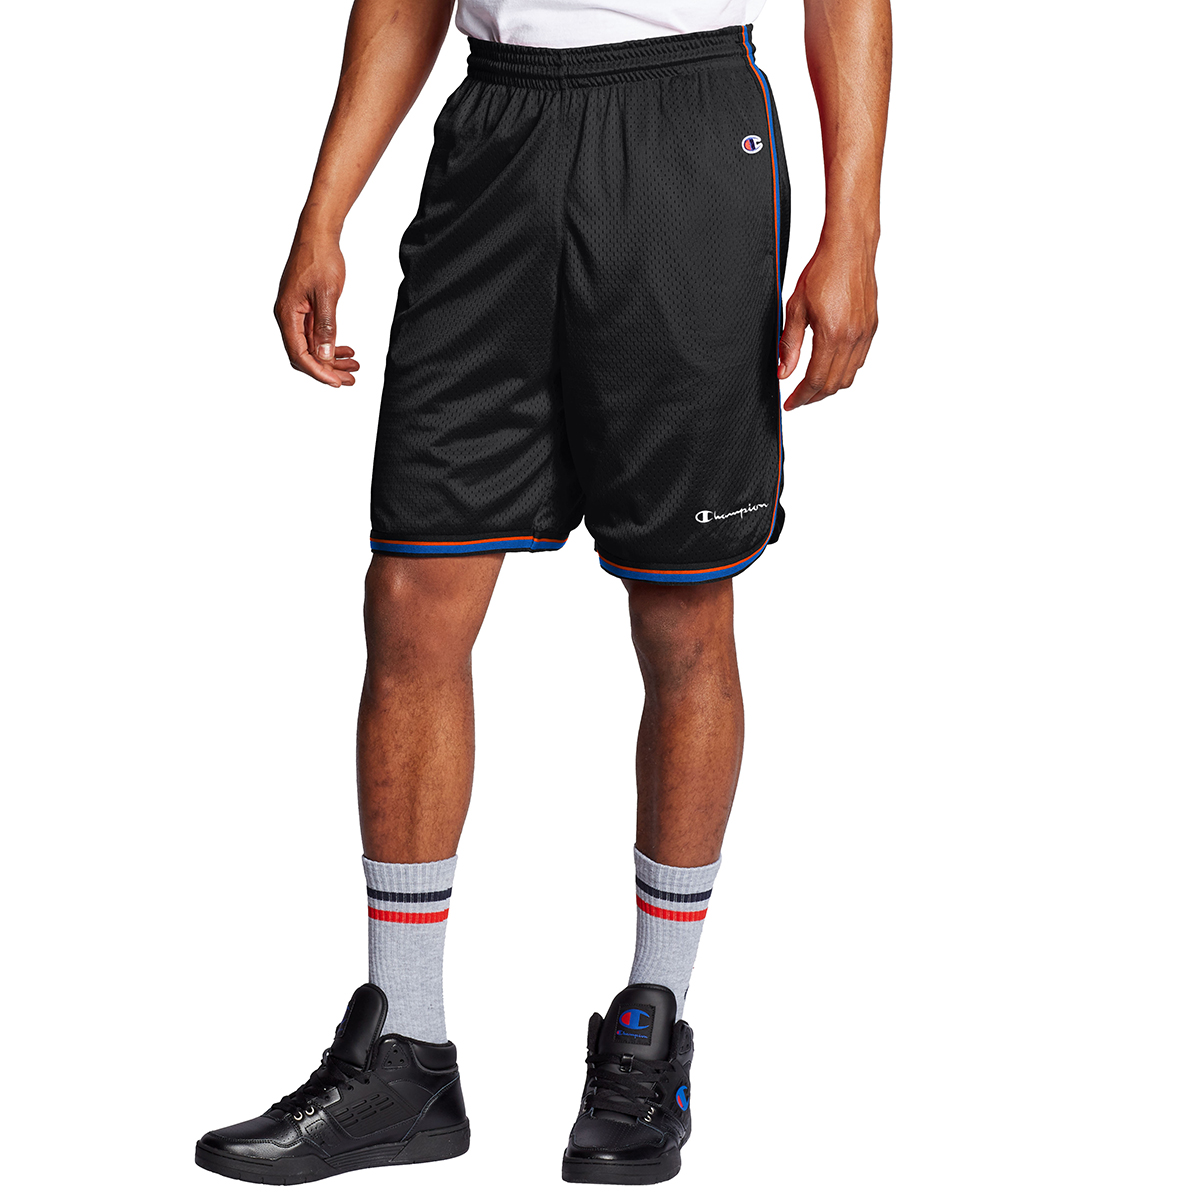 Champion Men's Core Basketball Shorts - Black, M